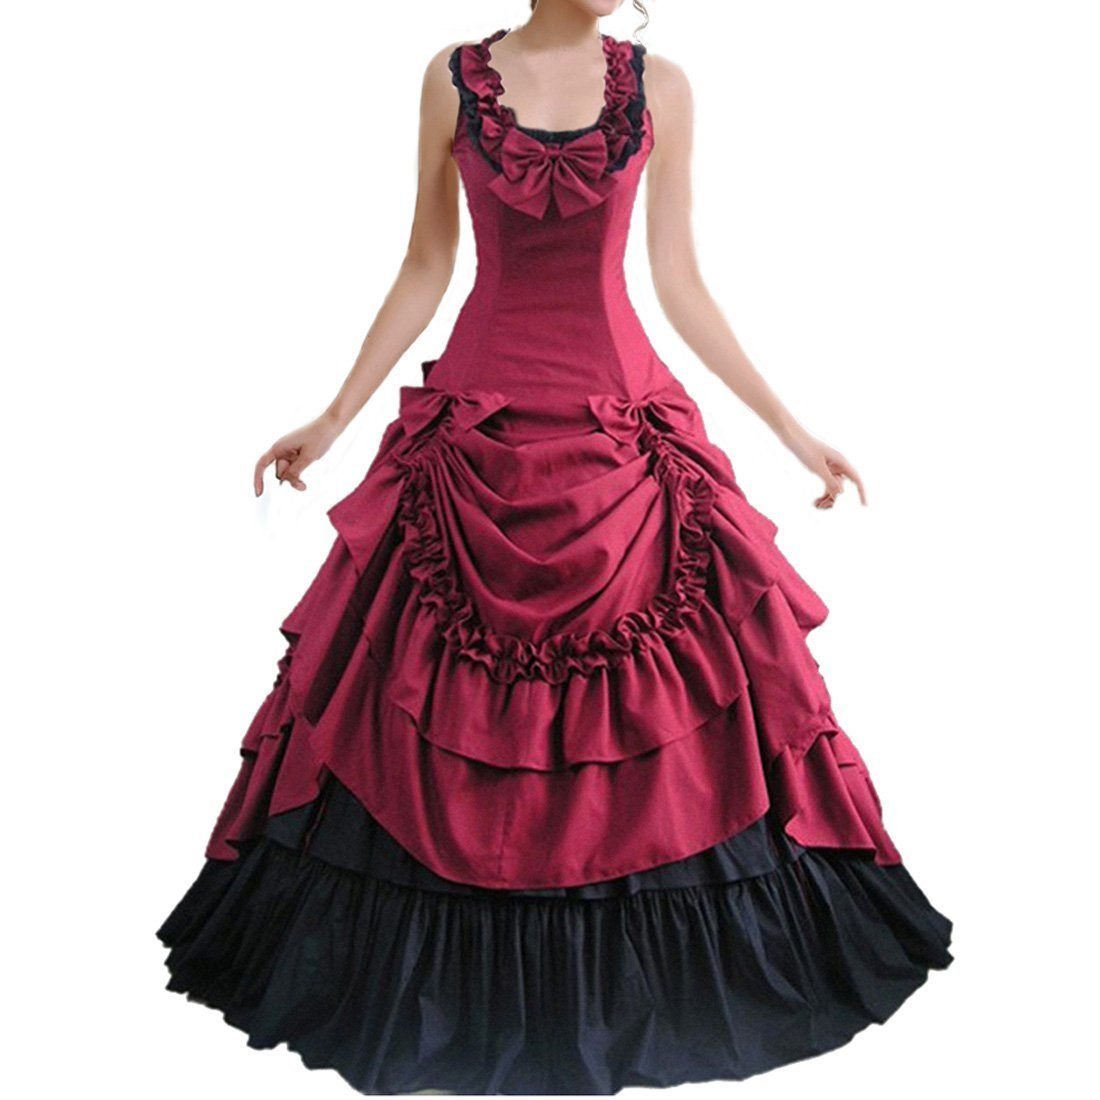 Old Fashioned Dresses | Old Dress Styles Partiss Womens Sleeveless Bowknot Ballgown Gothic Dress $79.99 AT vintagedancer.com